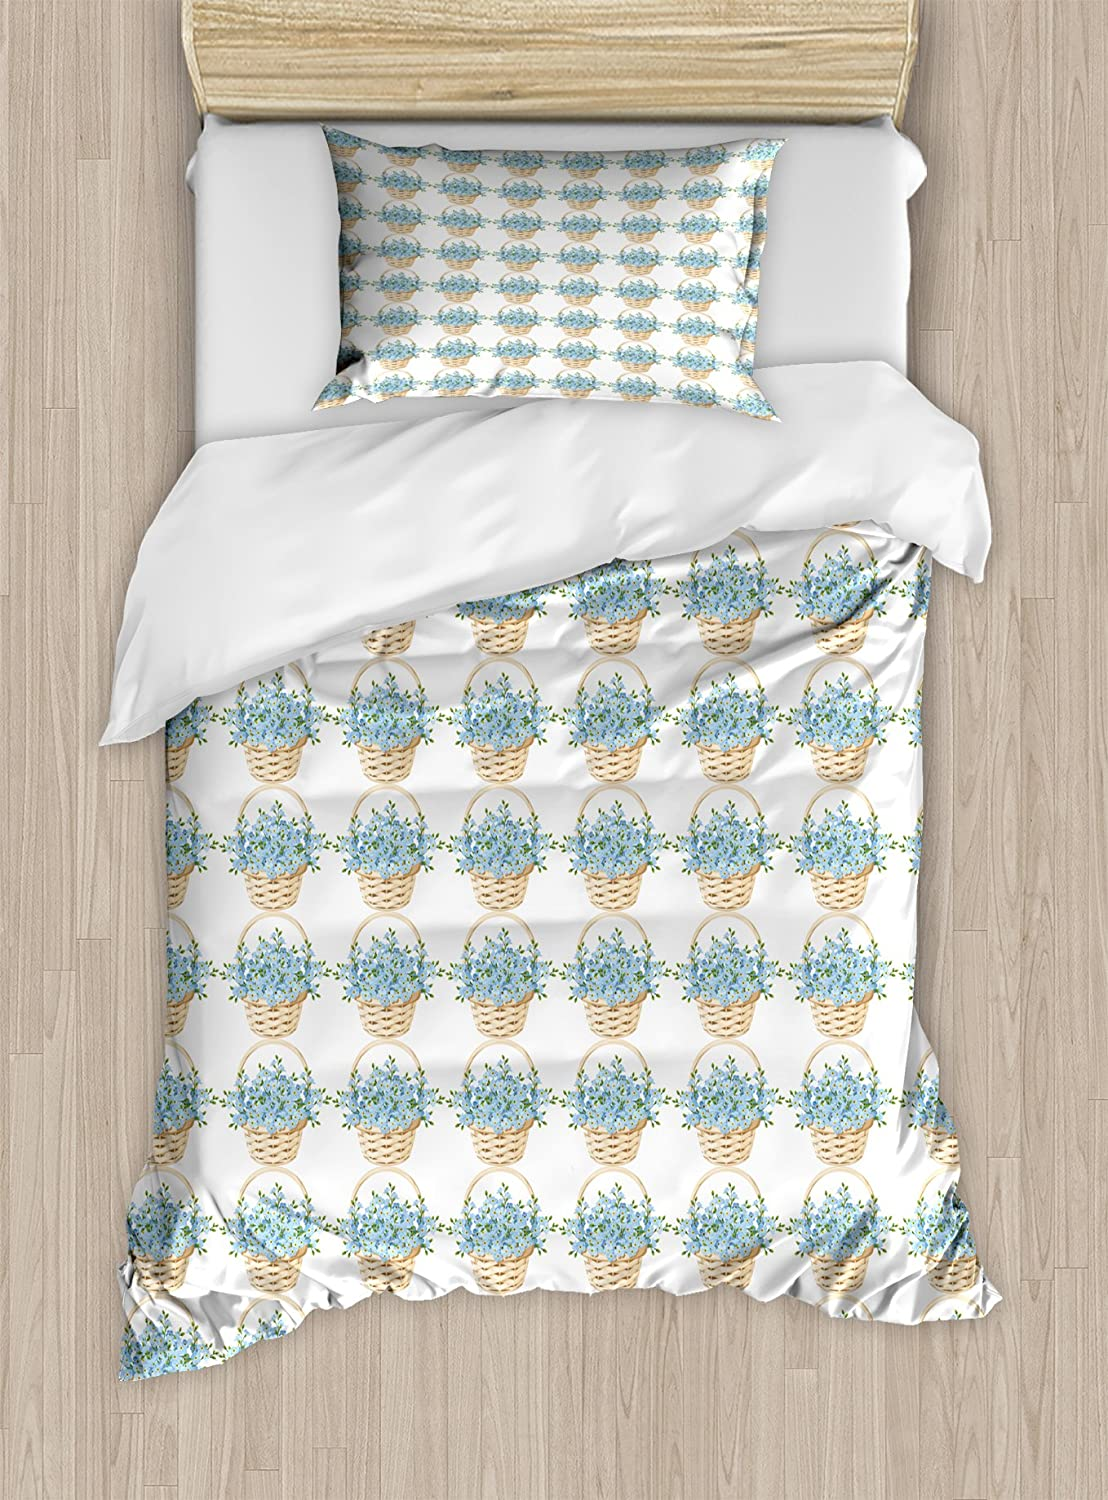 Ambesonne Ivory and Blue Twin Size Duvet Cover Set, Wicker Basket Design with Spring Season Blooming Flowers, Decorative 2 Piece Bedding Set with 1 Pillow Sham, Pale Blue Ivory and Green